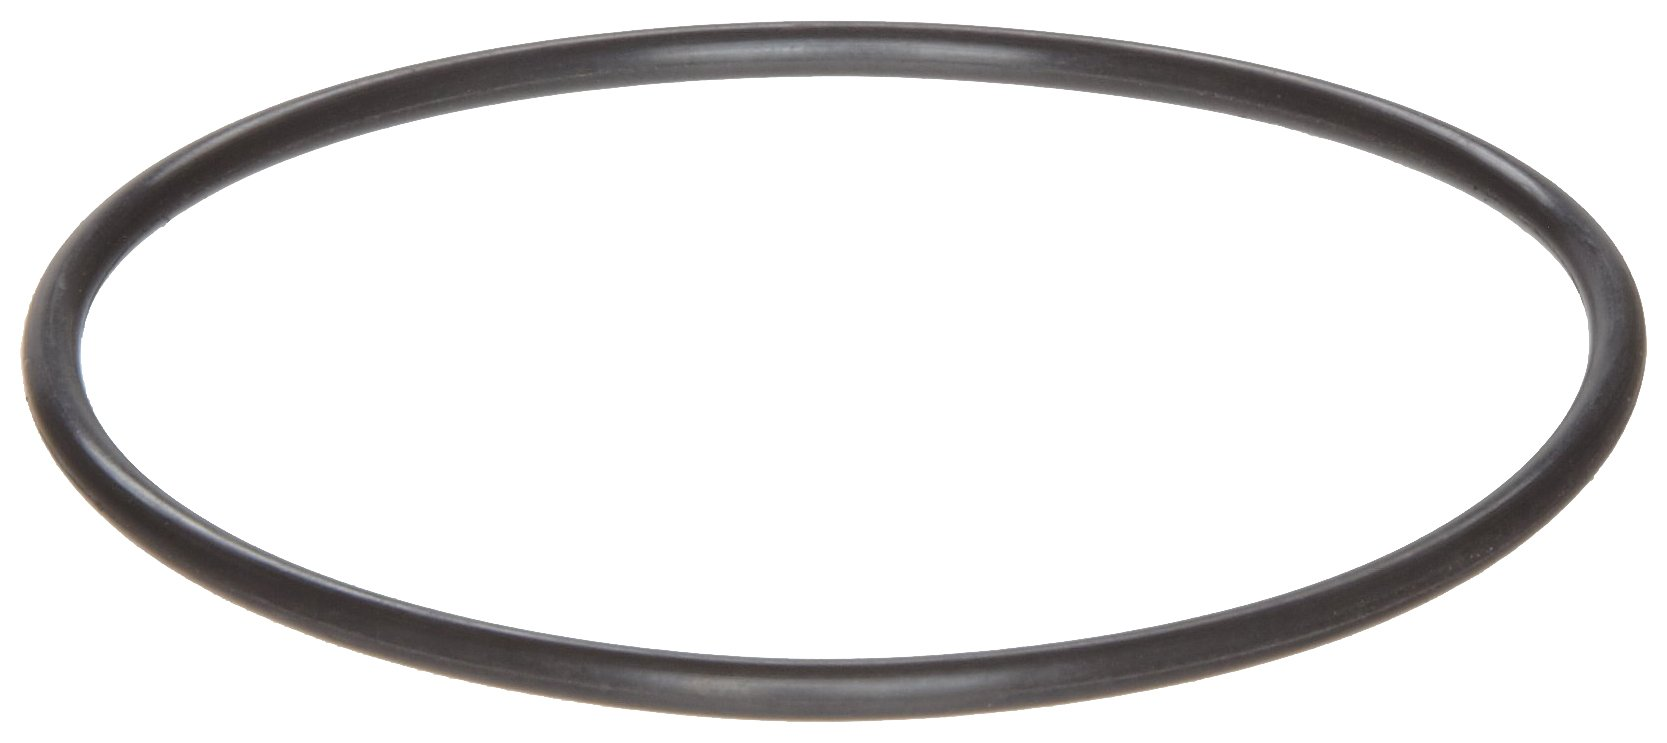 048 Viton O-Ring, 90A Durometer, Round, Black, 4-3/4'' ID, 4-7/8'' OD, 1/16'' Width (Pack of 10)